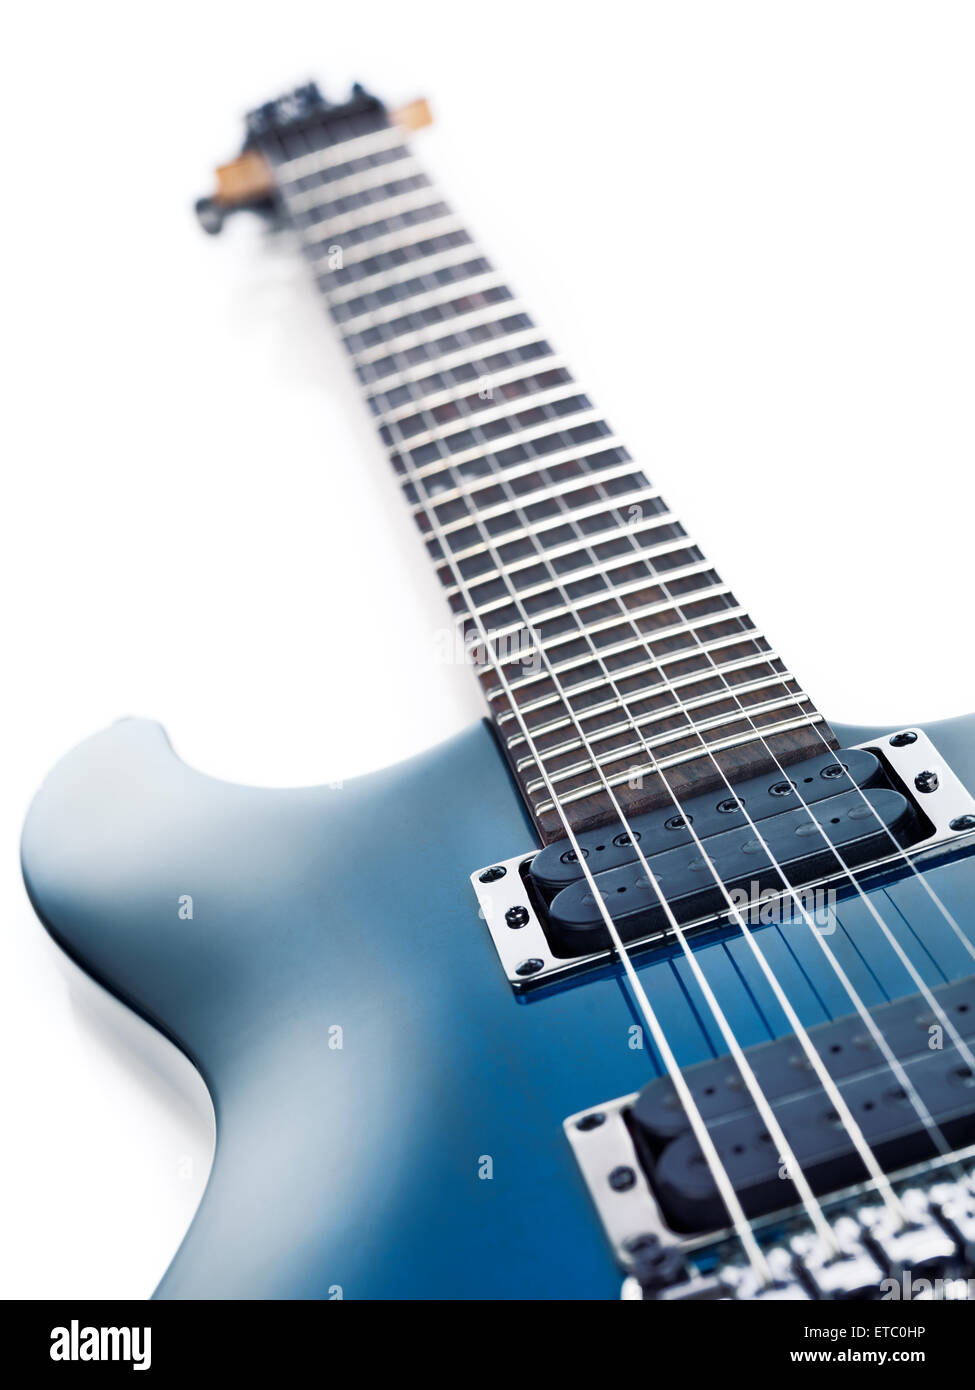 Excellent 7 Way Guitar Switch Tall Car Alarm System Diagram Solid Vehicle Alarm Wiring Diagram Bulldog Vehicle Old Ibanez Humbucker WhiteGretsch Wiring Harness Blue Ibanez S Series Electric Guitar Closeup Of Neck And Pickups ..